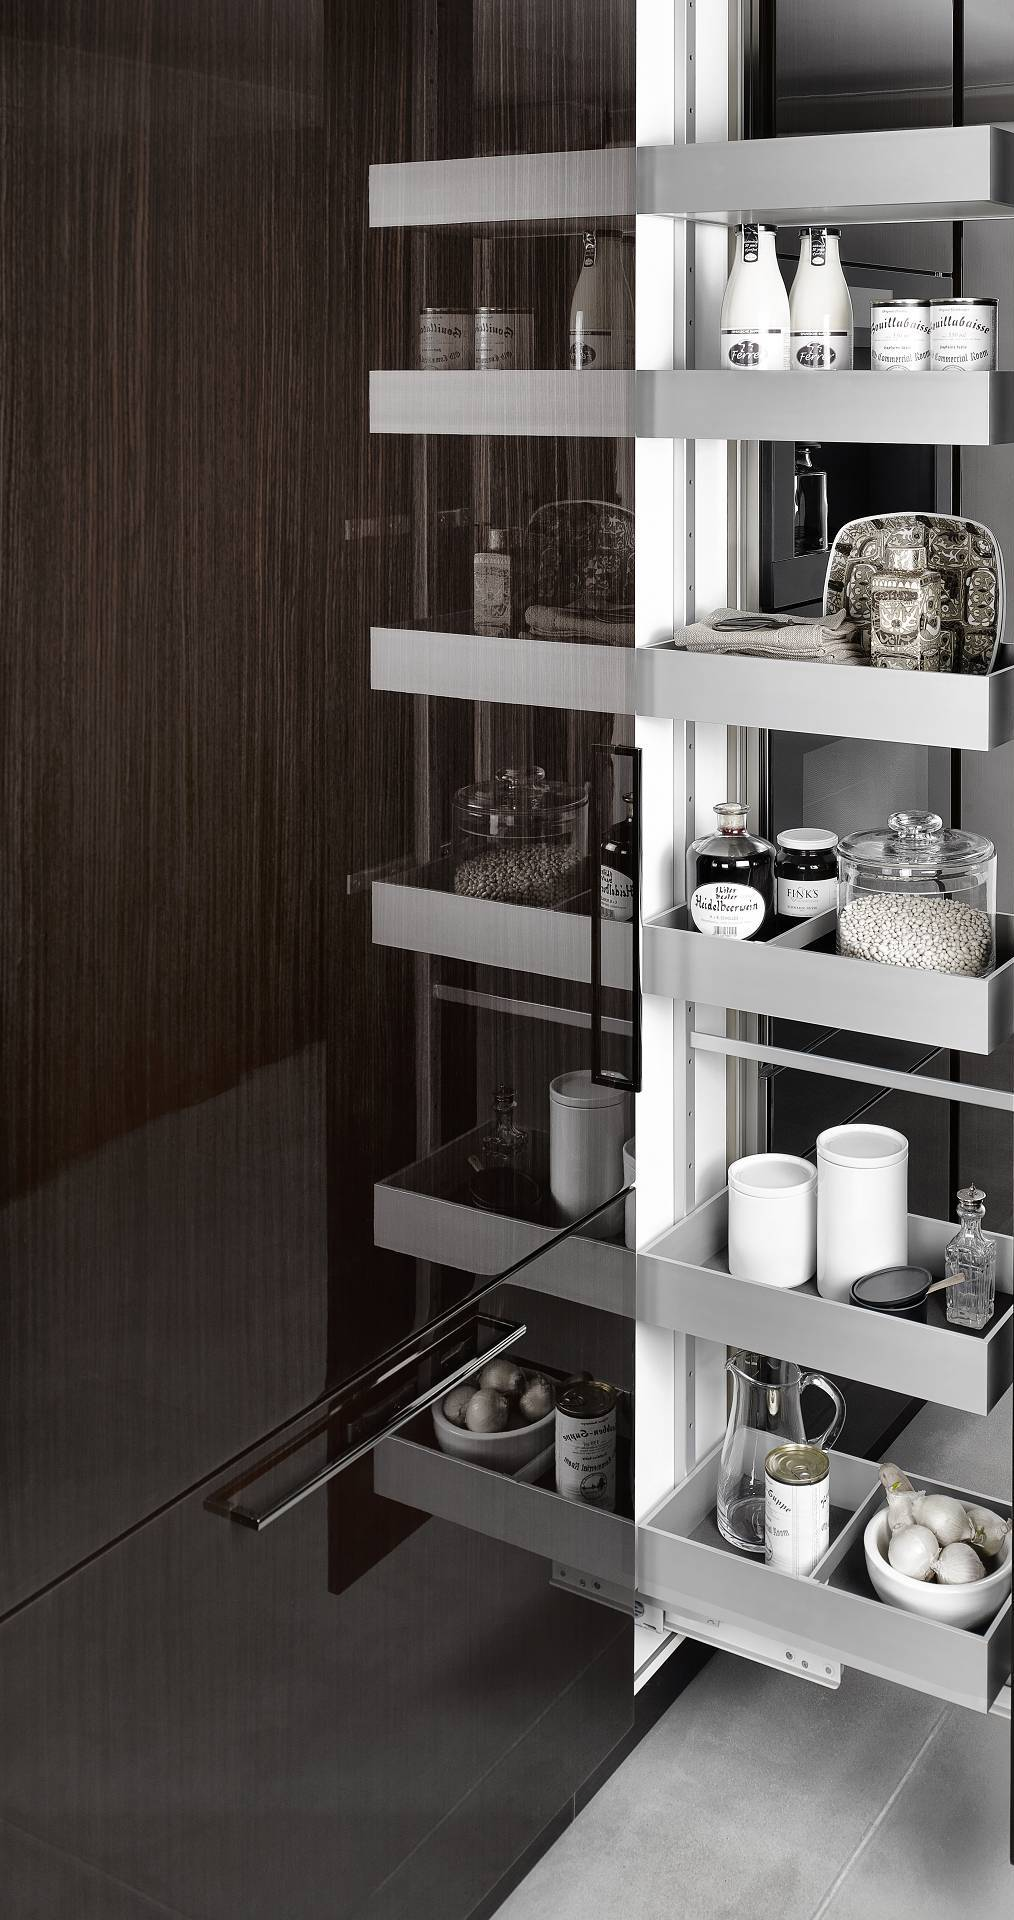 SieMatic MultiMatic accesorios para cocinas